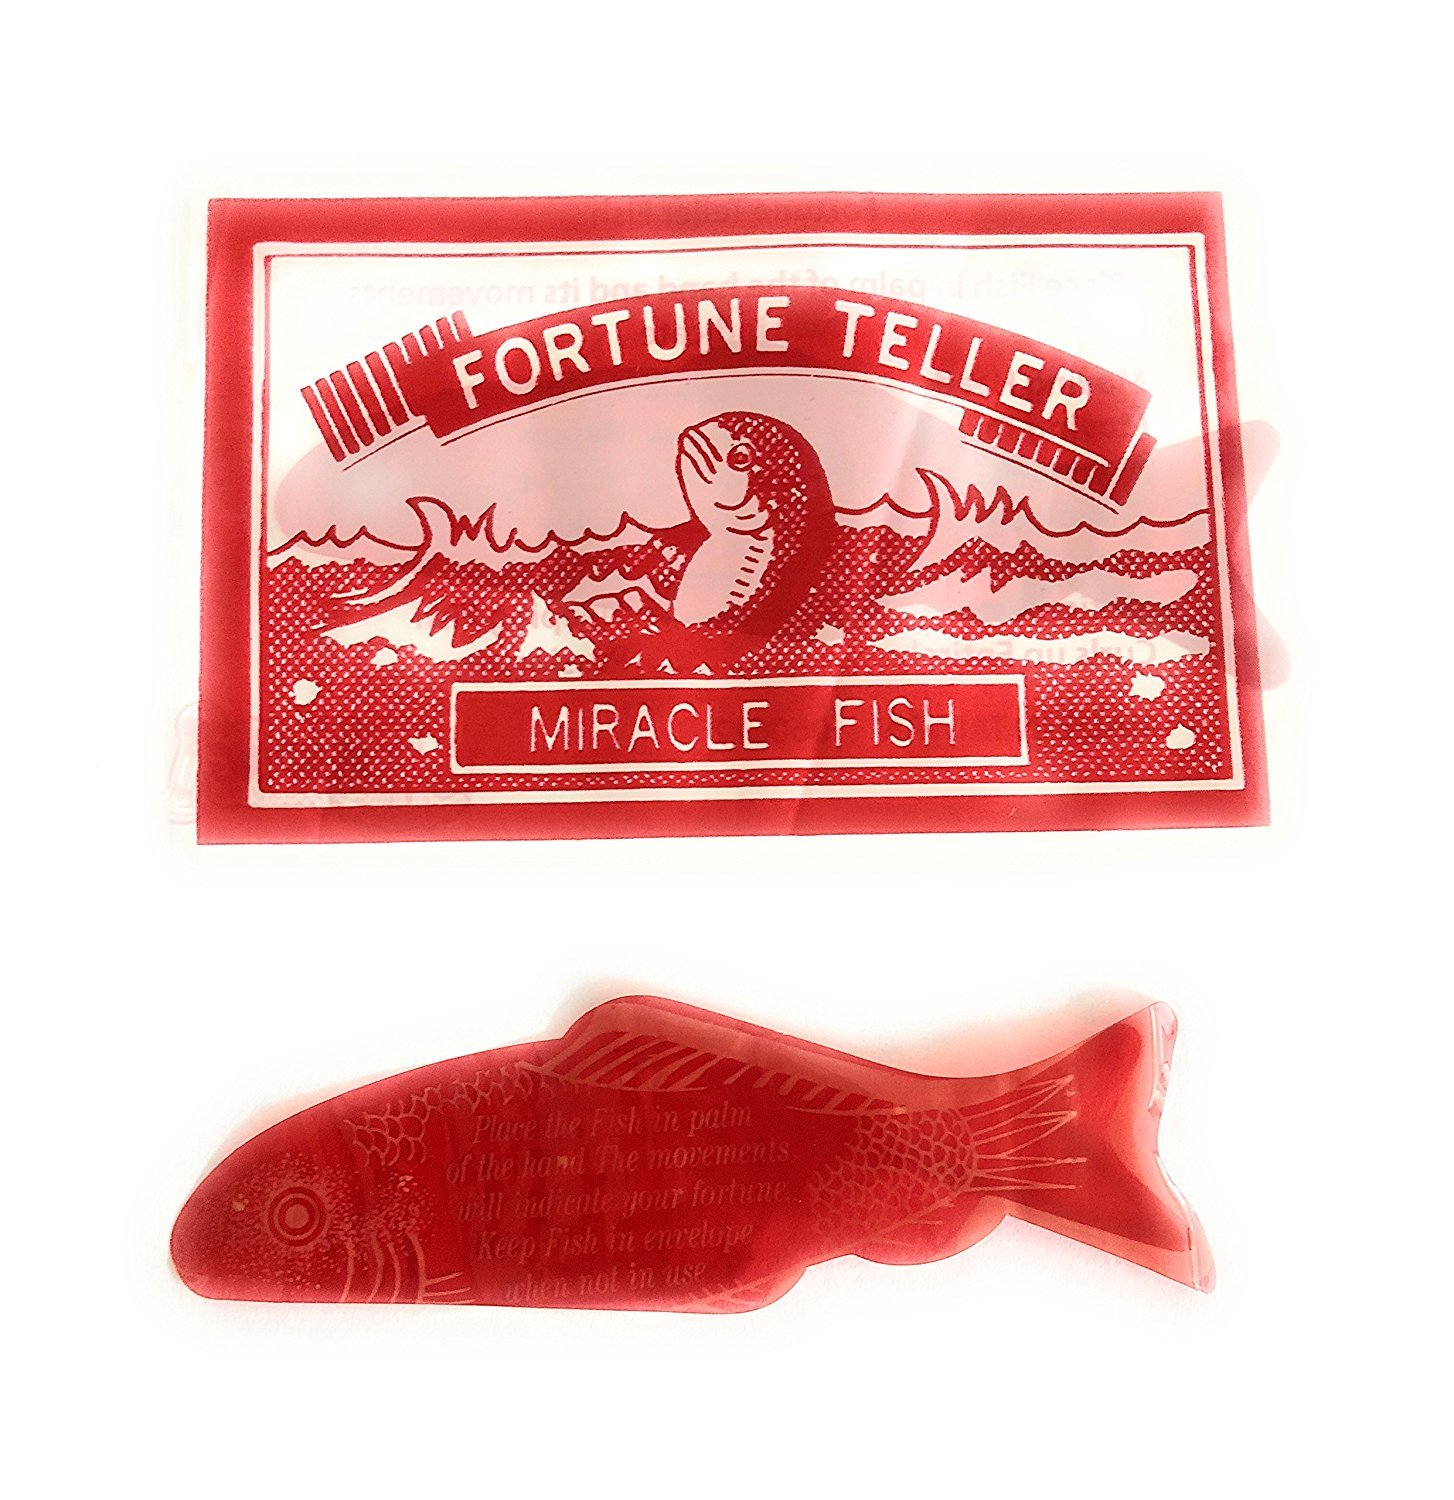 144 Fortune Teller Miracle Fish Fortune Telling Fish In Individual Envelopes Wholesale Vending Products